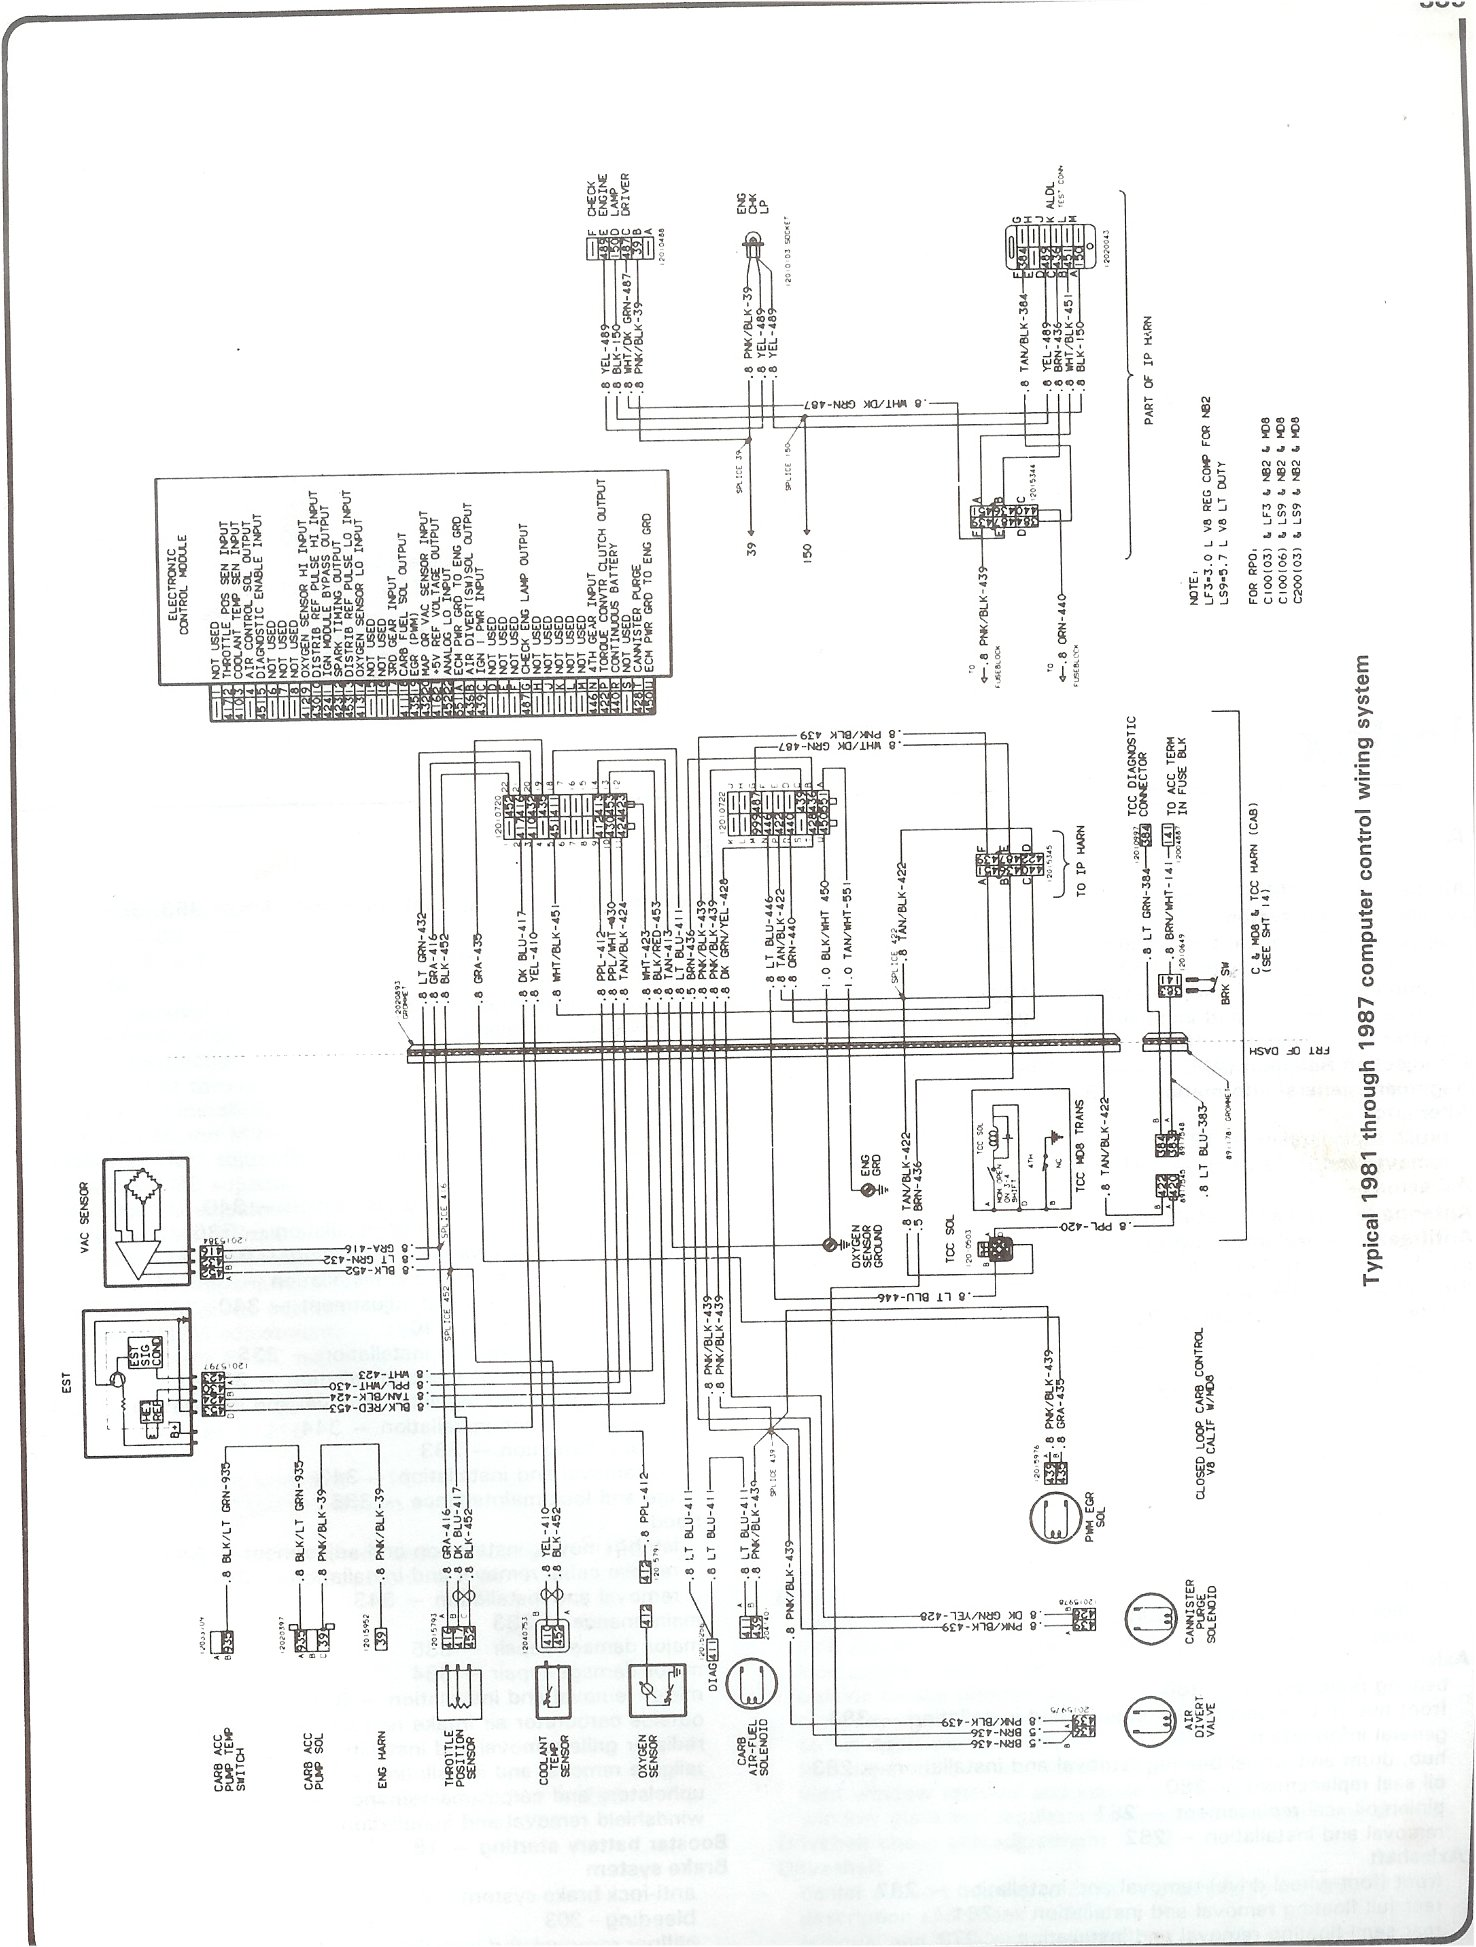 complete 73 87 wiring diagrams rh forum 73 87chevytrucks com 6 2 Diesel Chevy Glow Plug Wiring-Diagram 1984 Chevy Engine Wiring